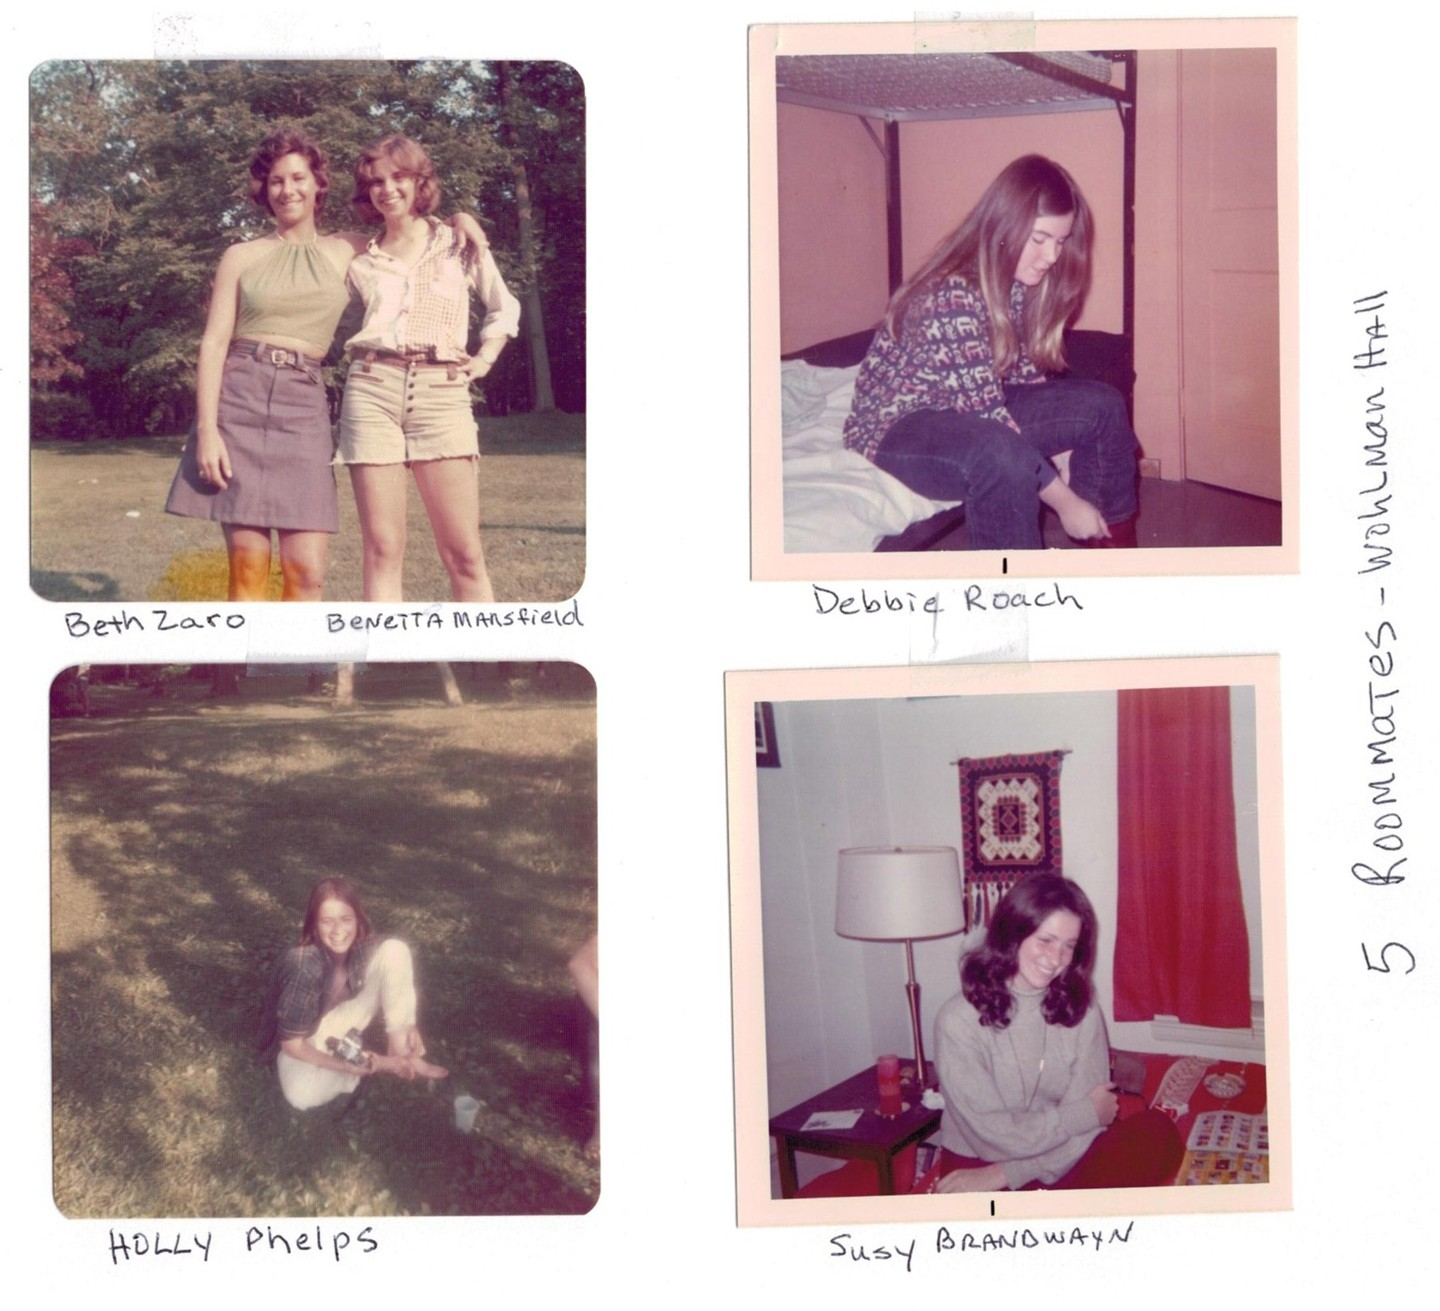 Four photos show five friends from the '70s